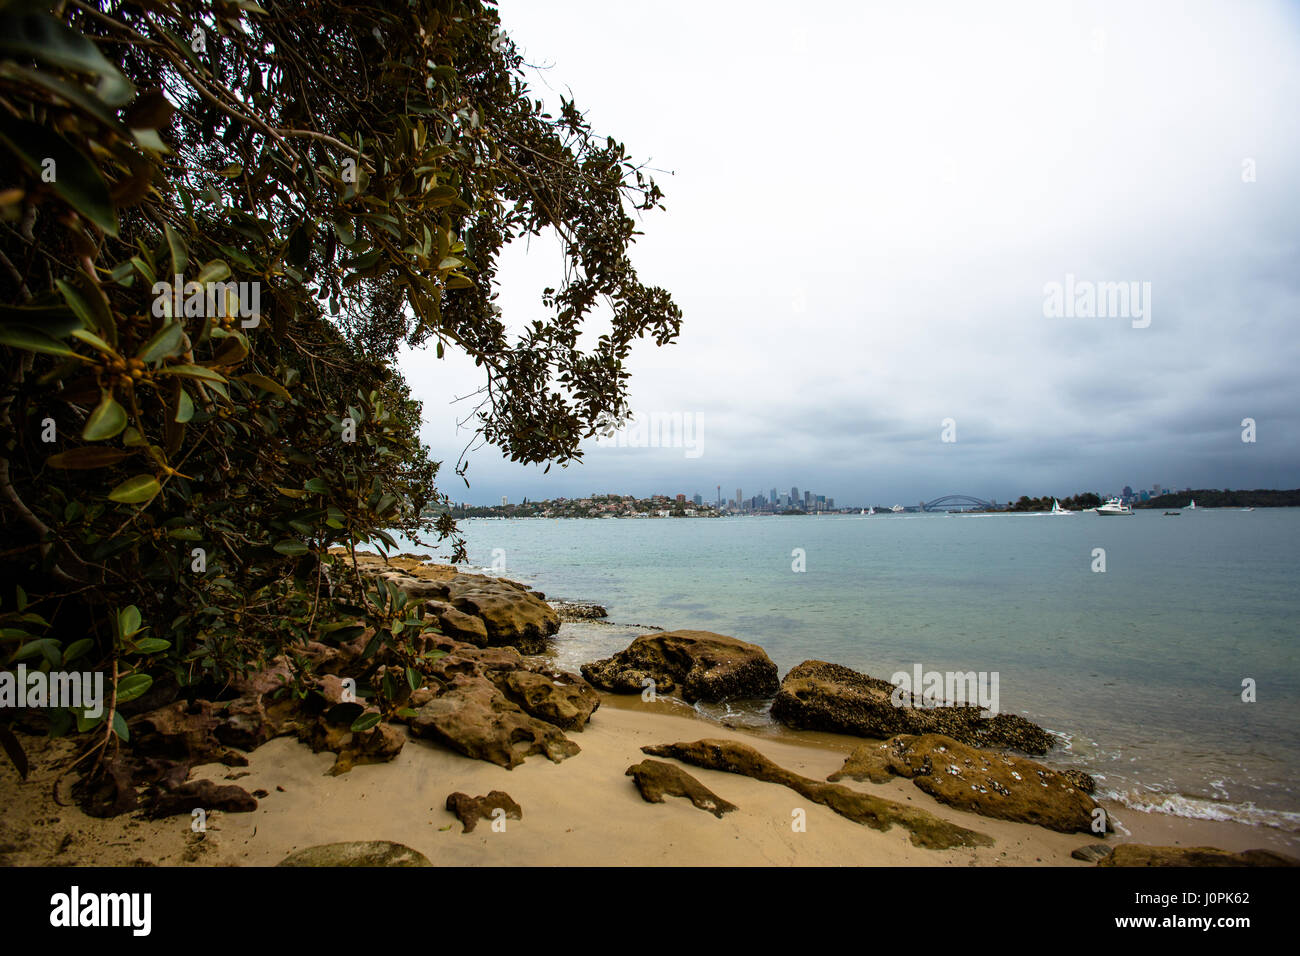 The beach and Sydney Cove from Hermit bay in the eastern suburbs - Stock Image